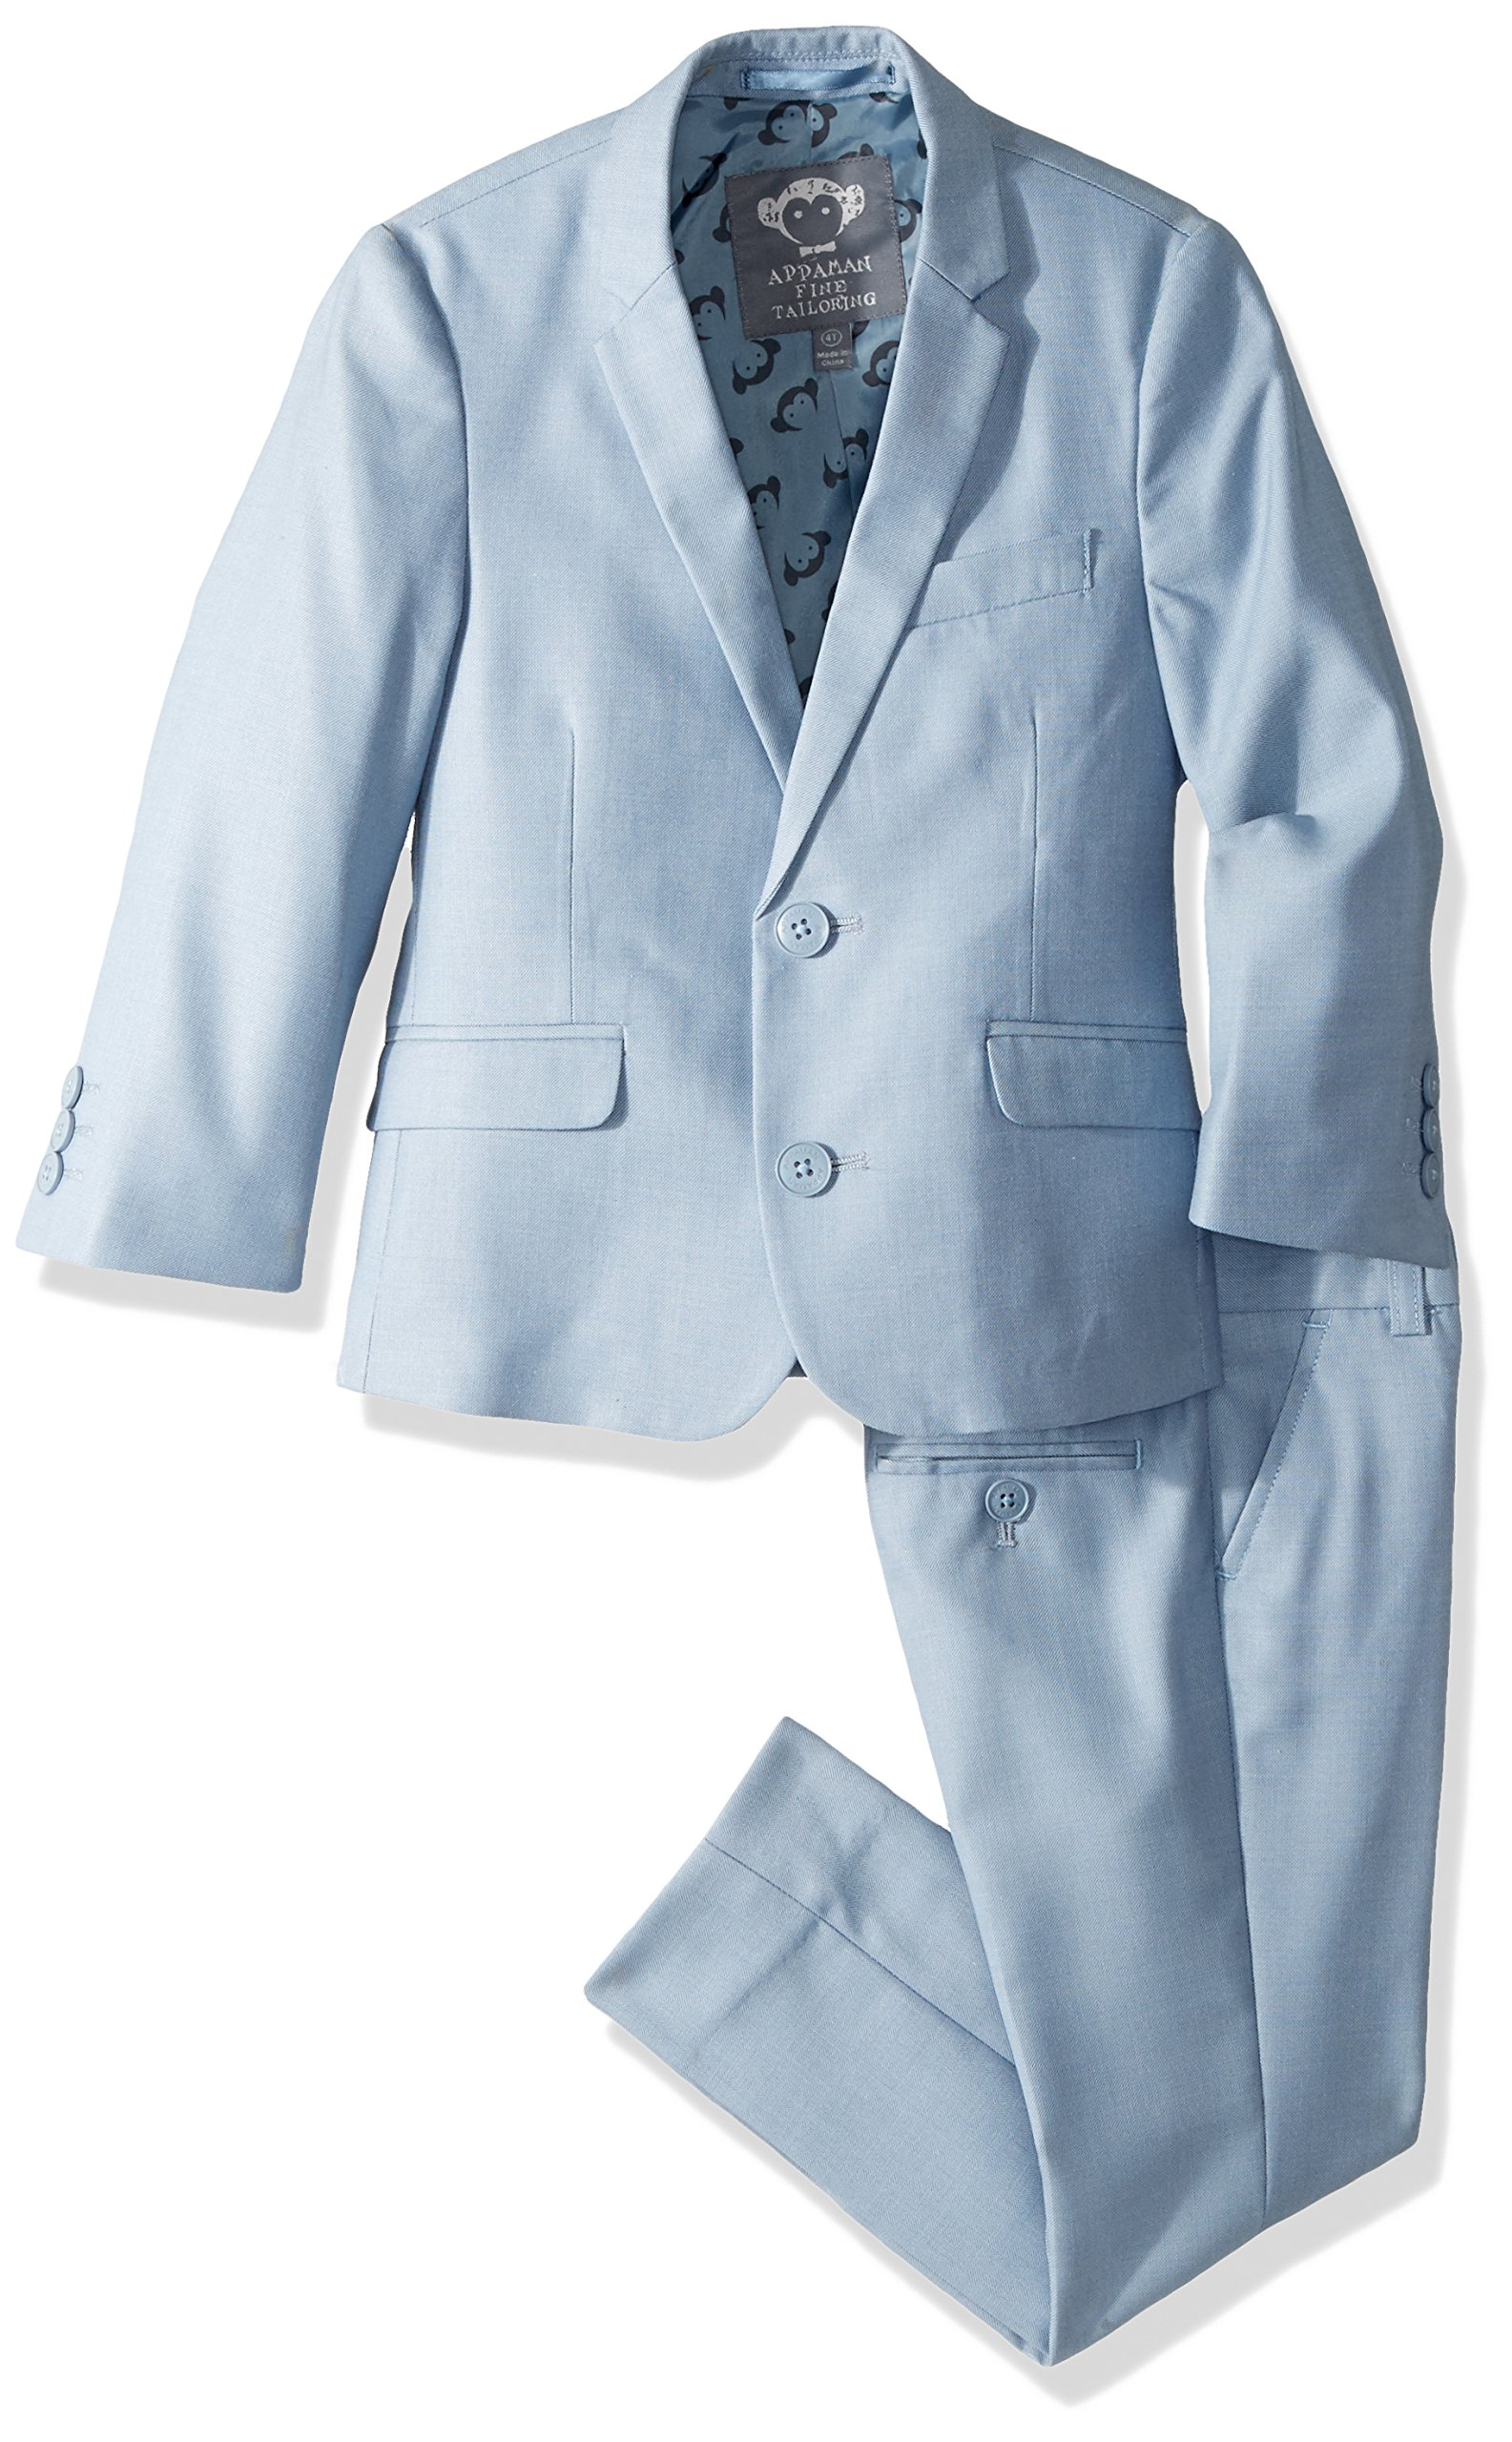 Appaman Boys' MOD Suit, Cool Blue, 6 by Appaman